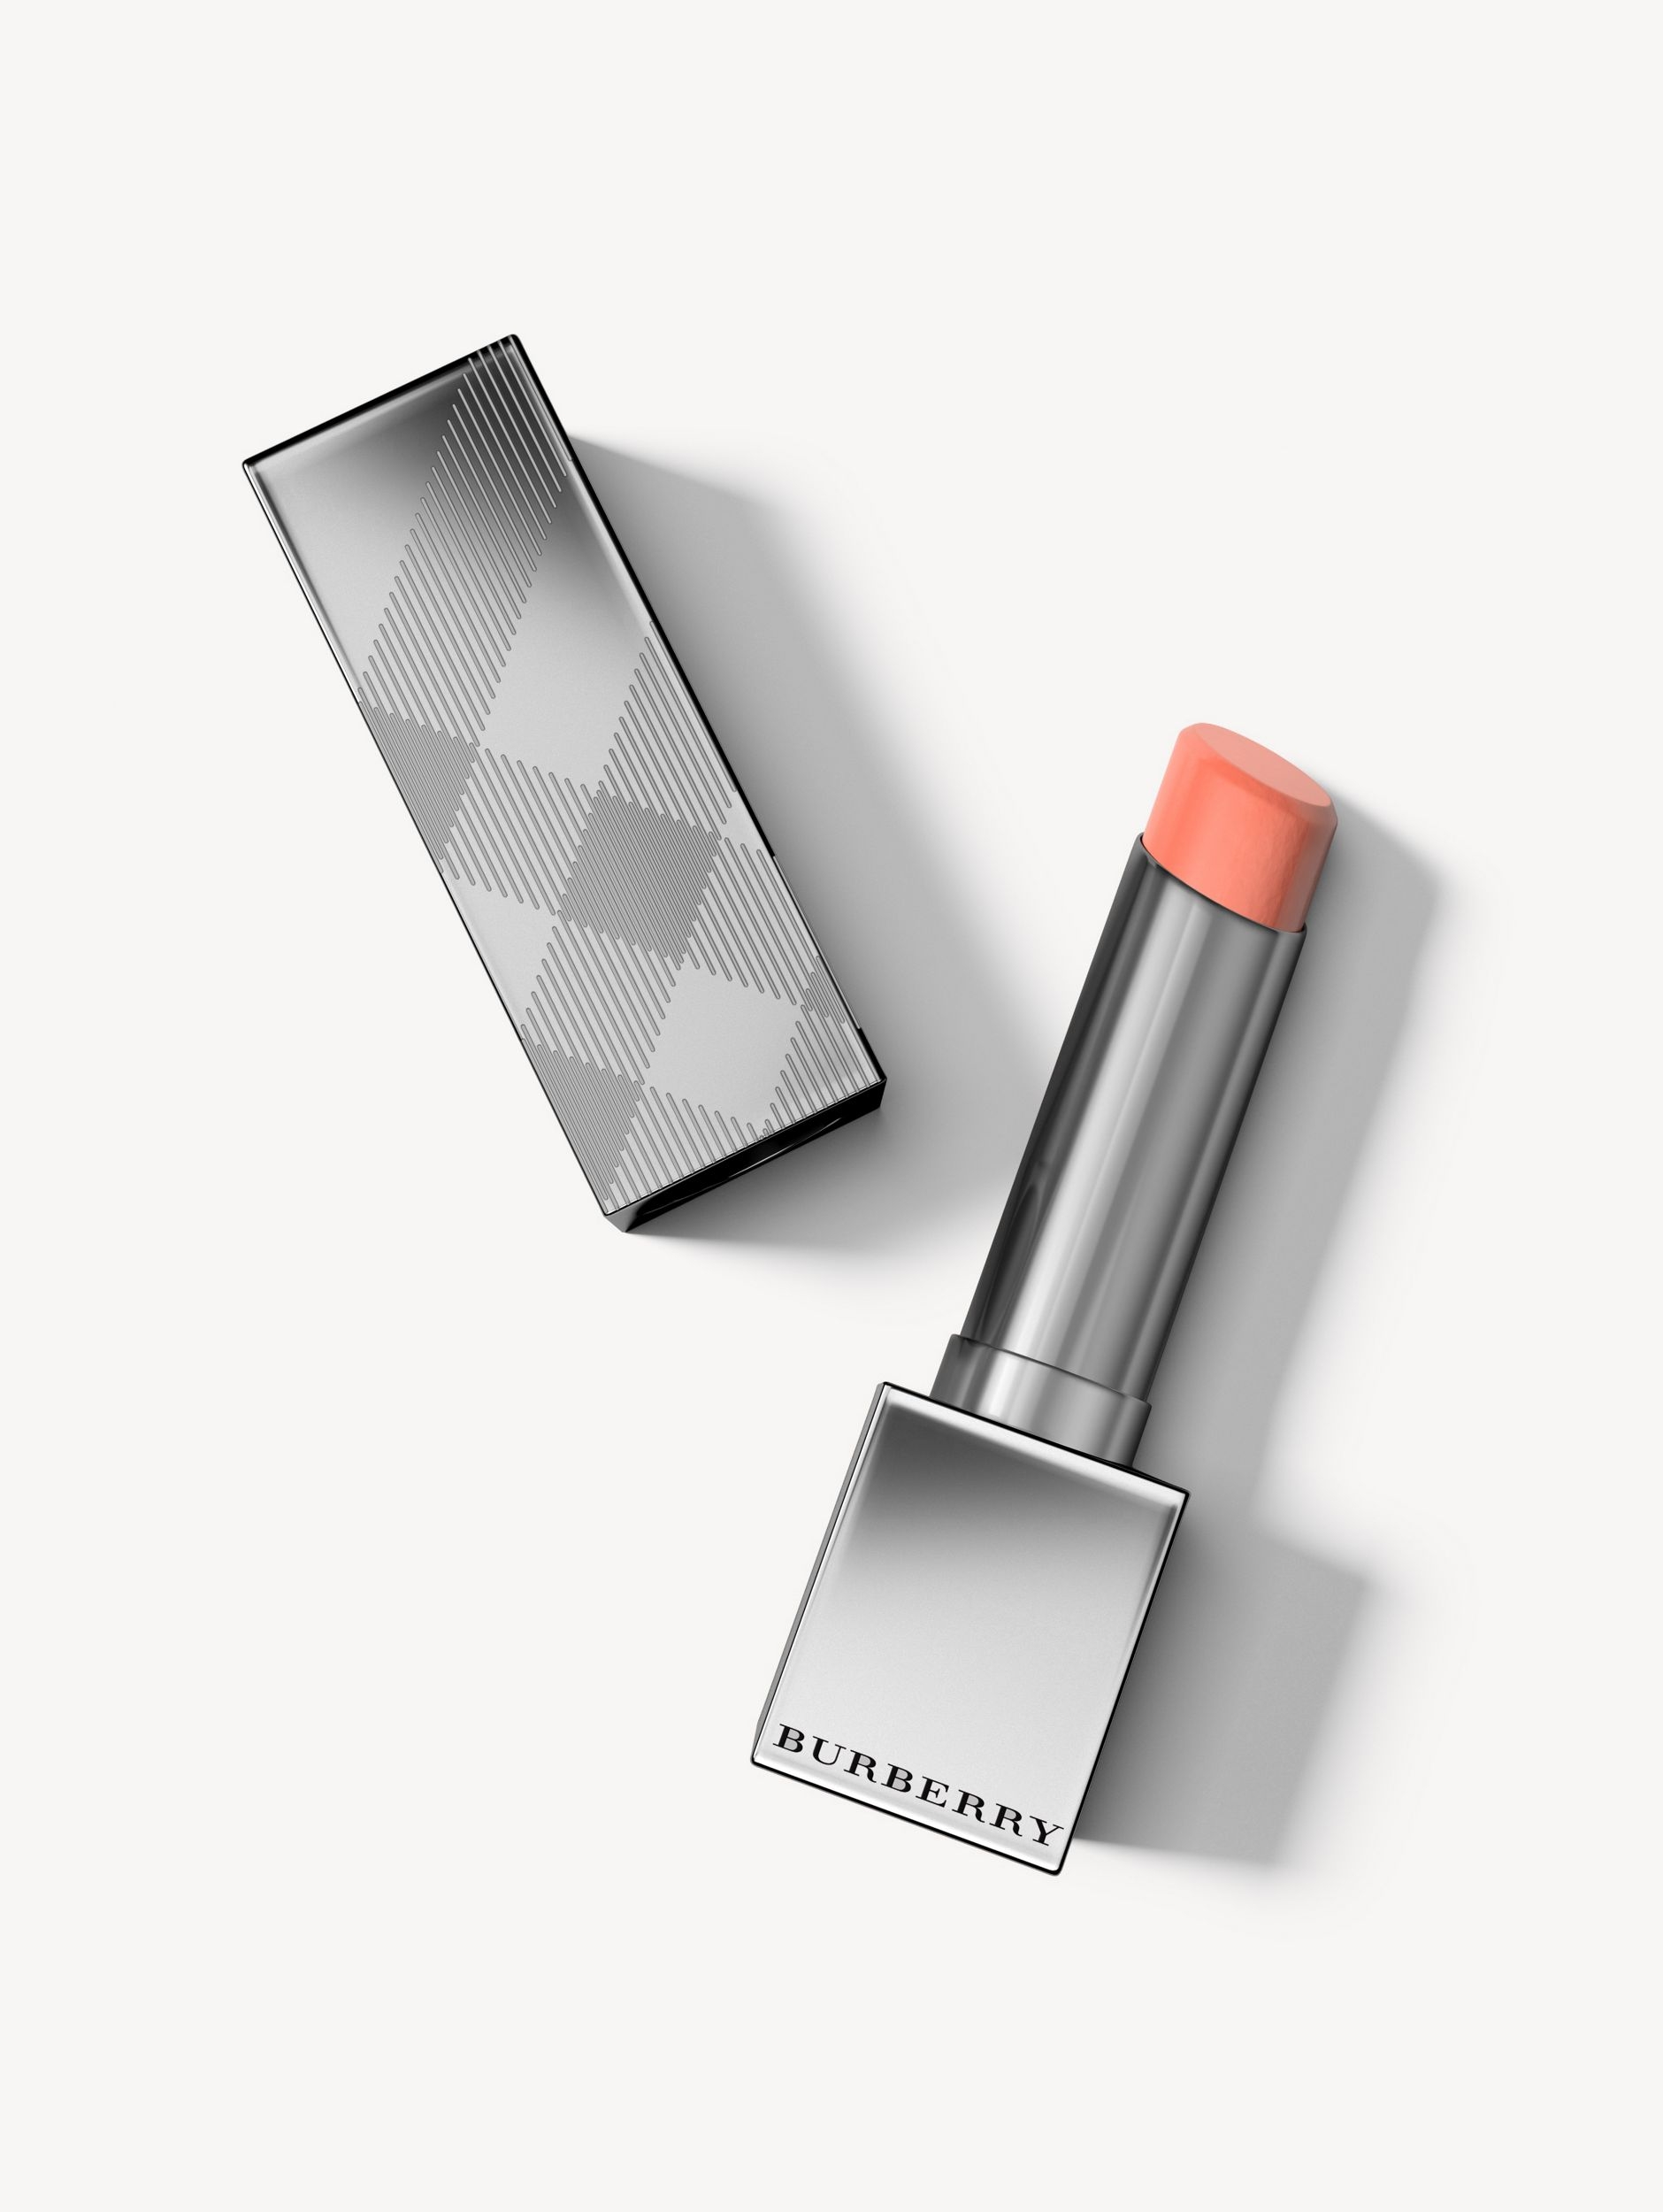 Burberry Kisses Sheer – Coral No.257 - Women | Burberry - 1